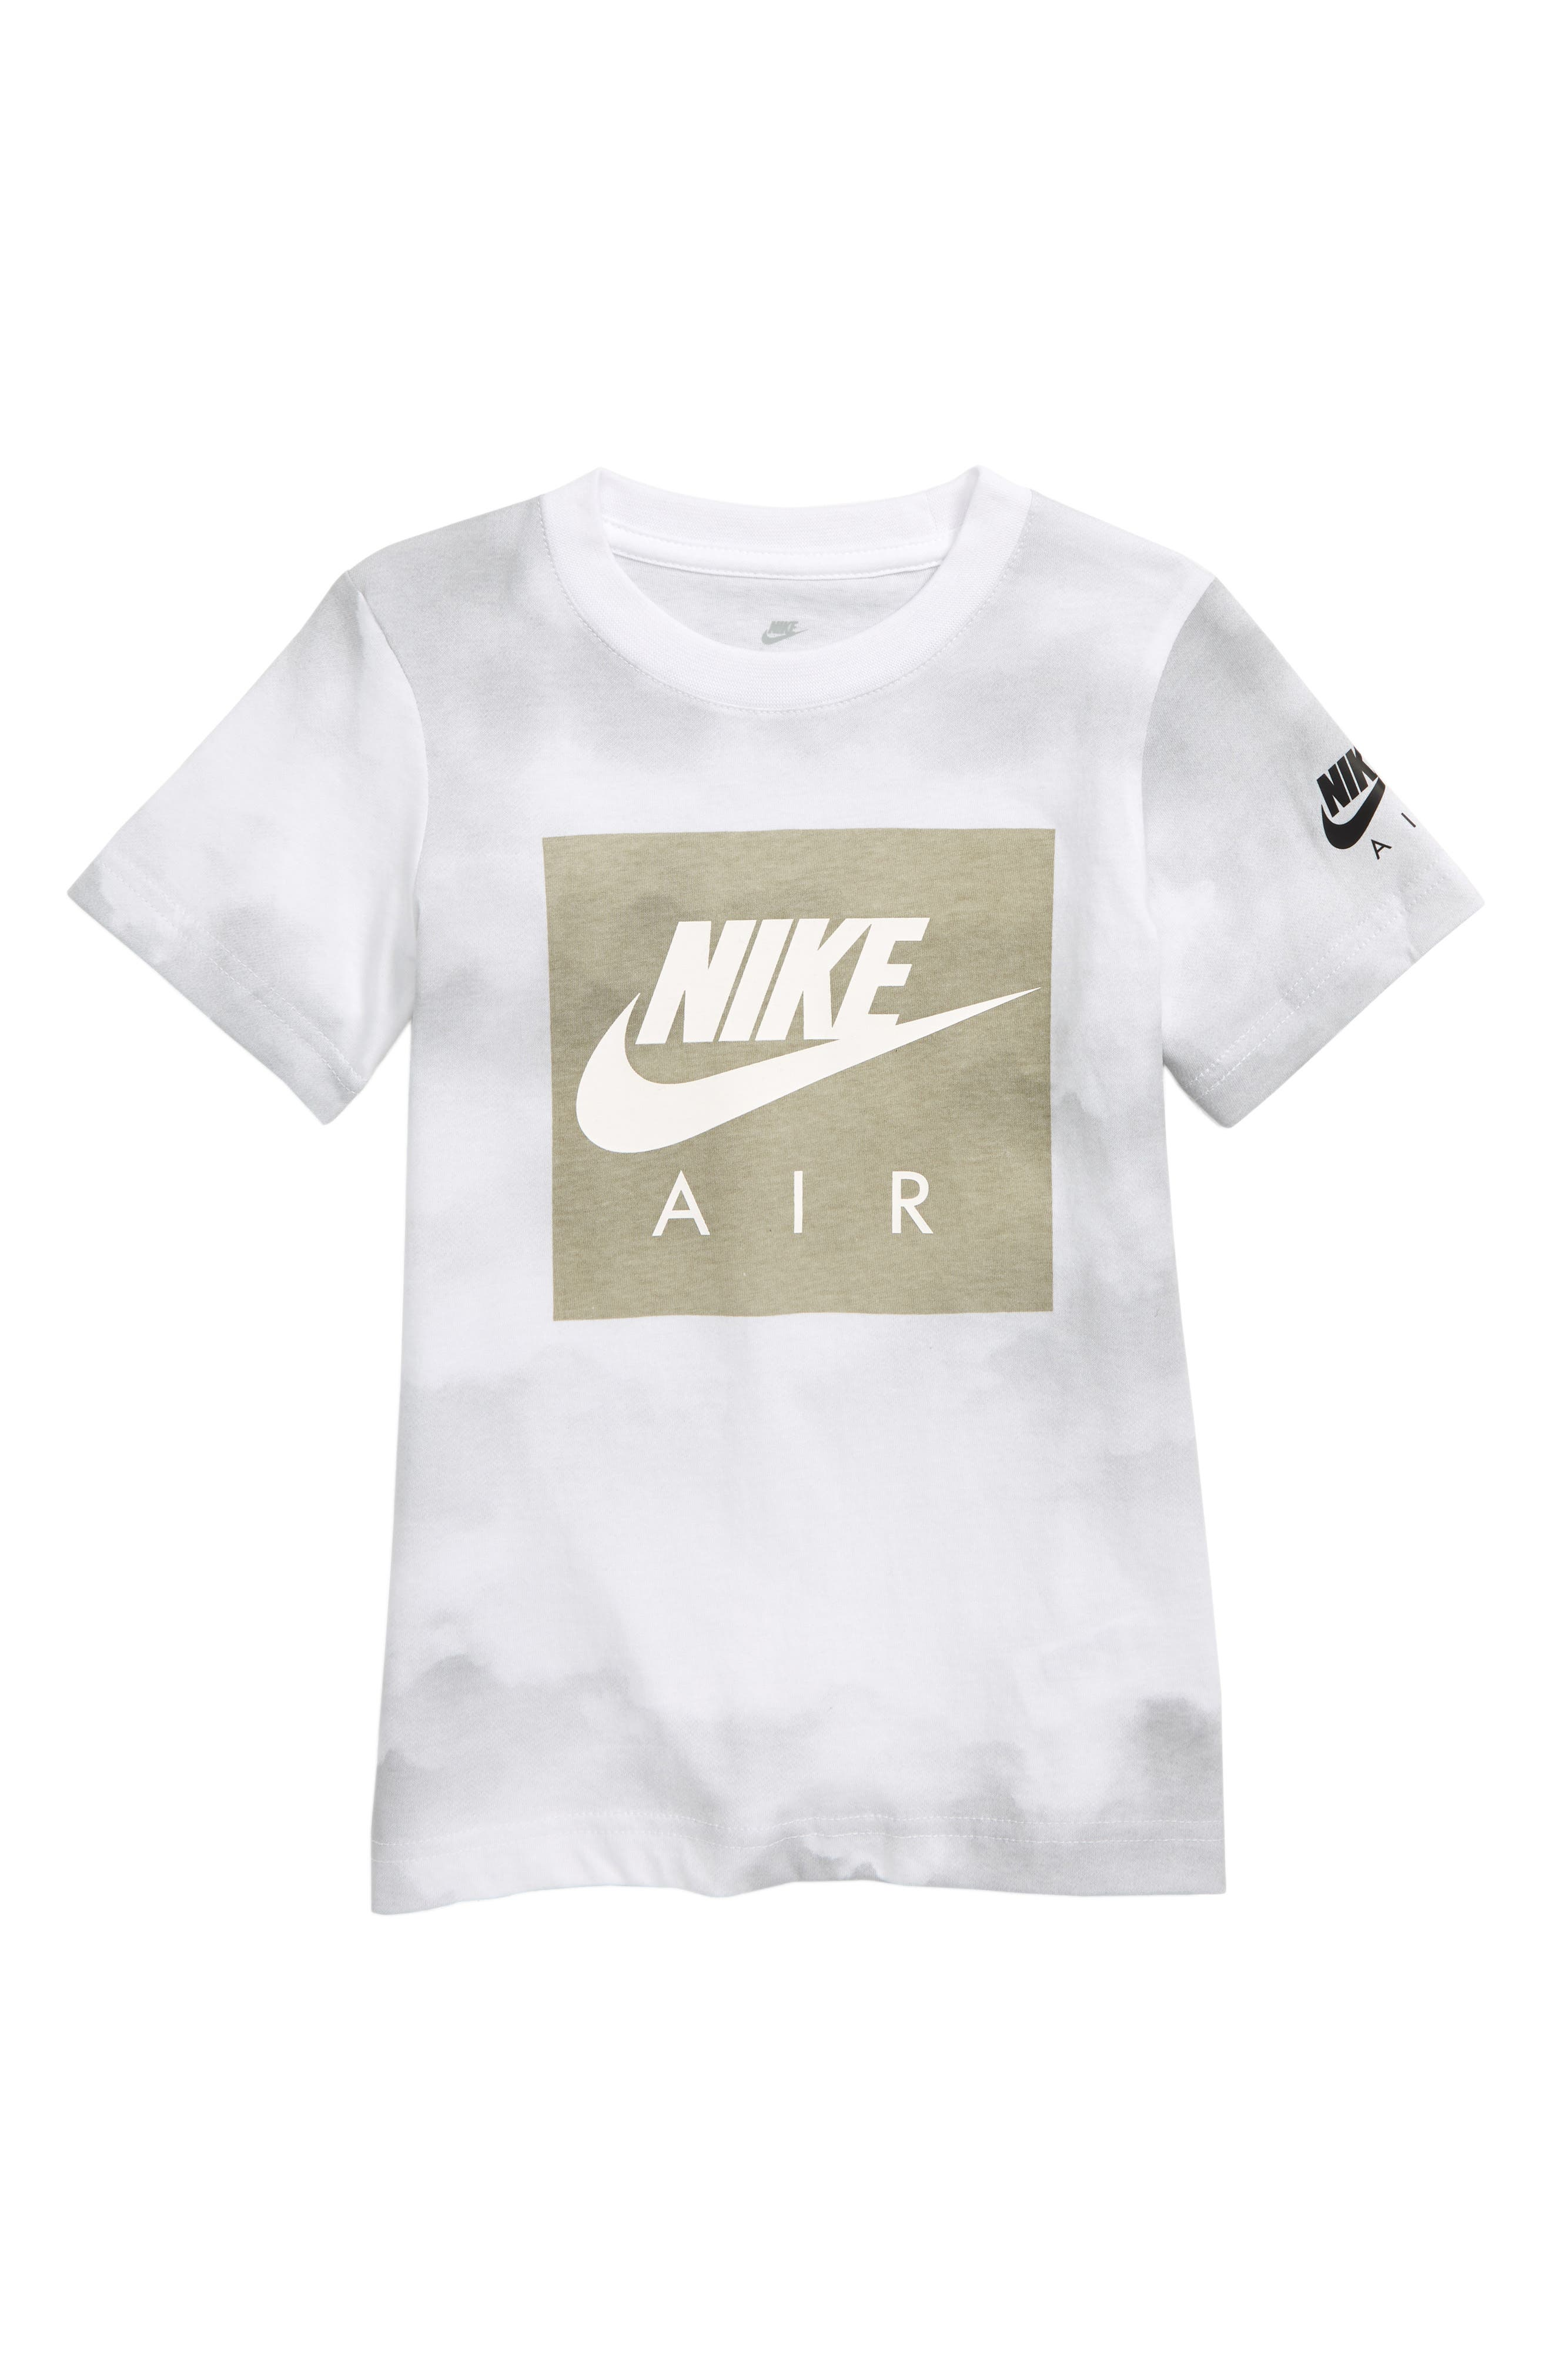 Air Cloud T-Shirt,                         Main,                         color, WHITE